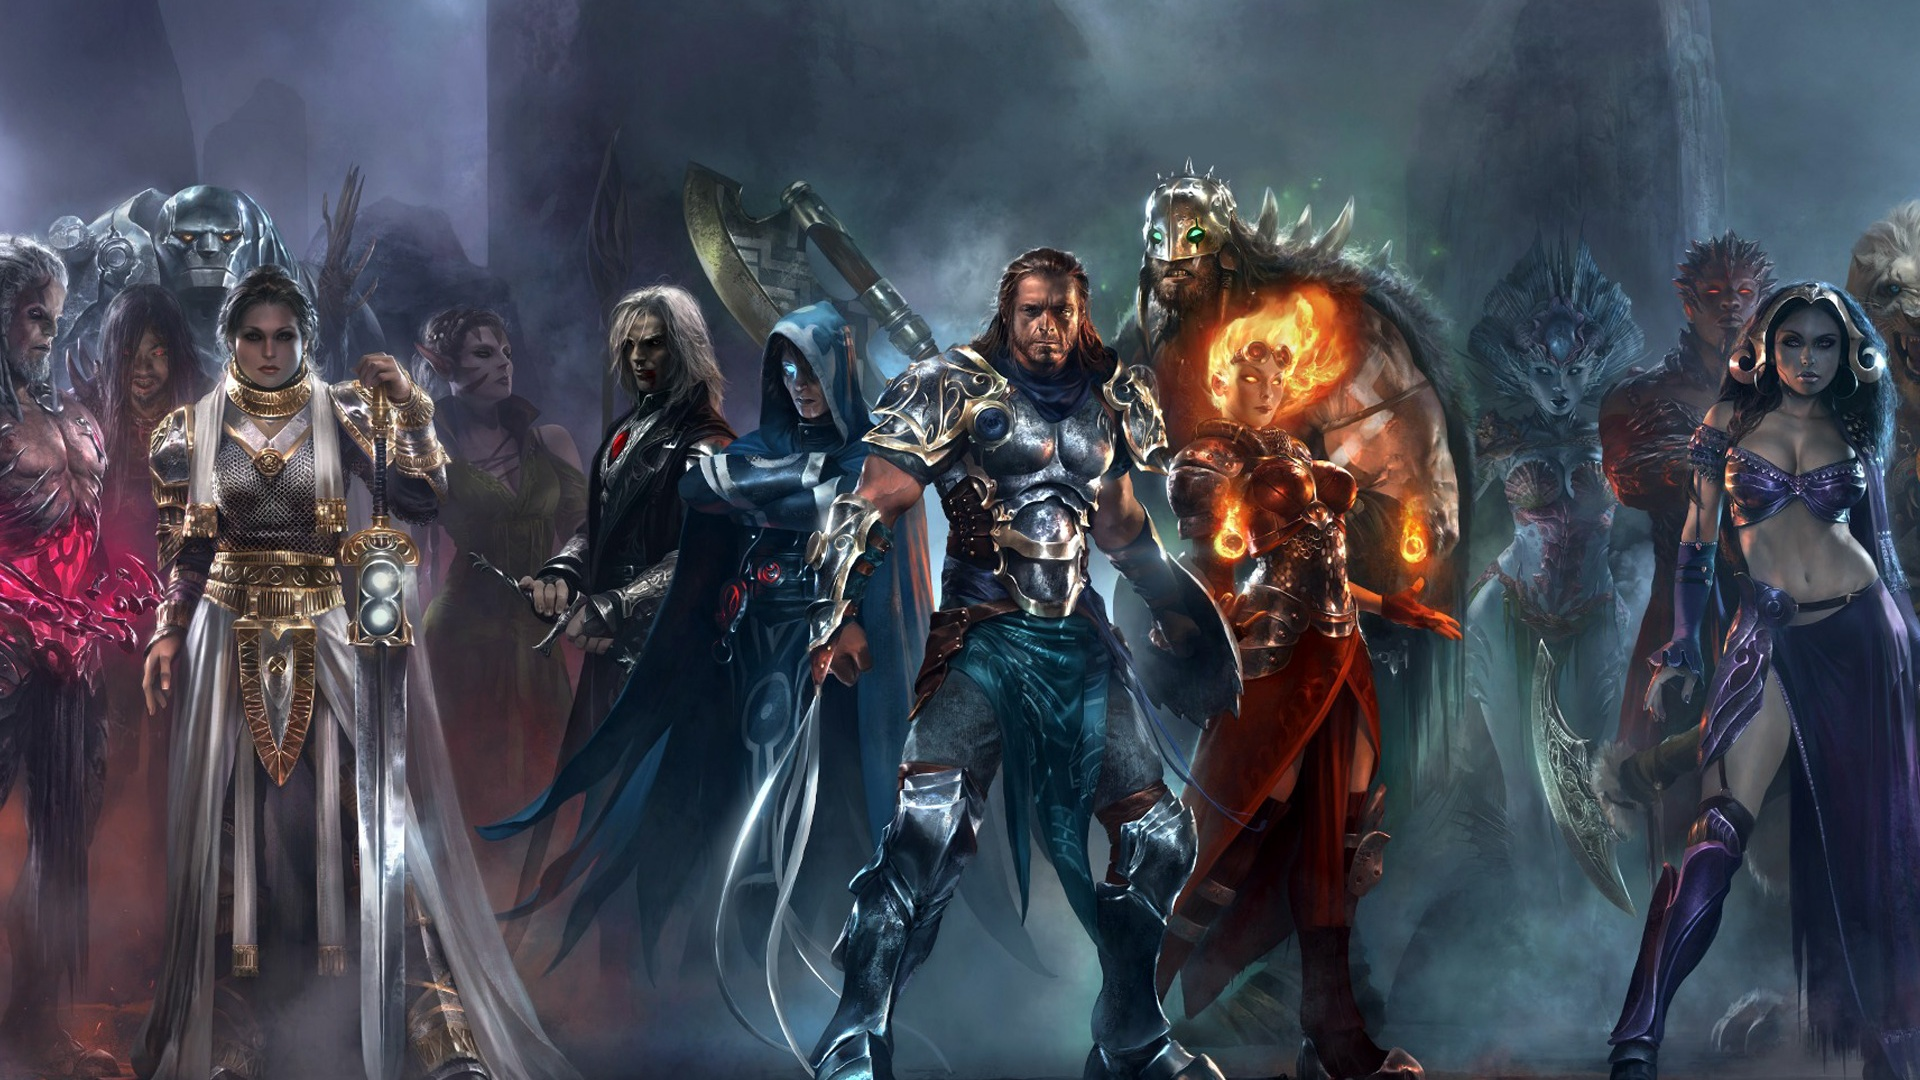 Wallpaper Magic The Gathering Duels Of The Planeswalkers